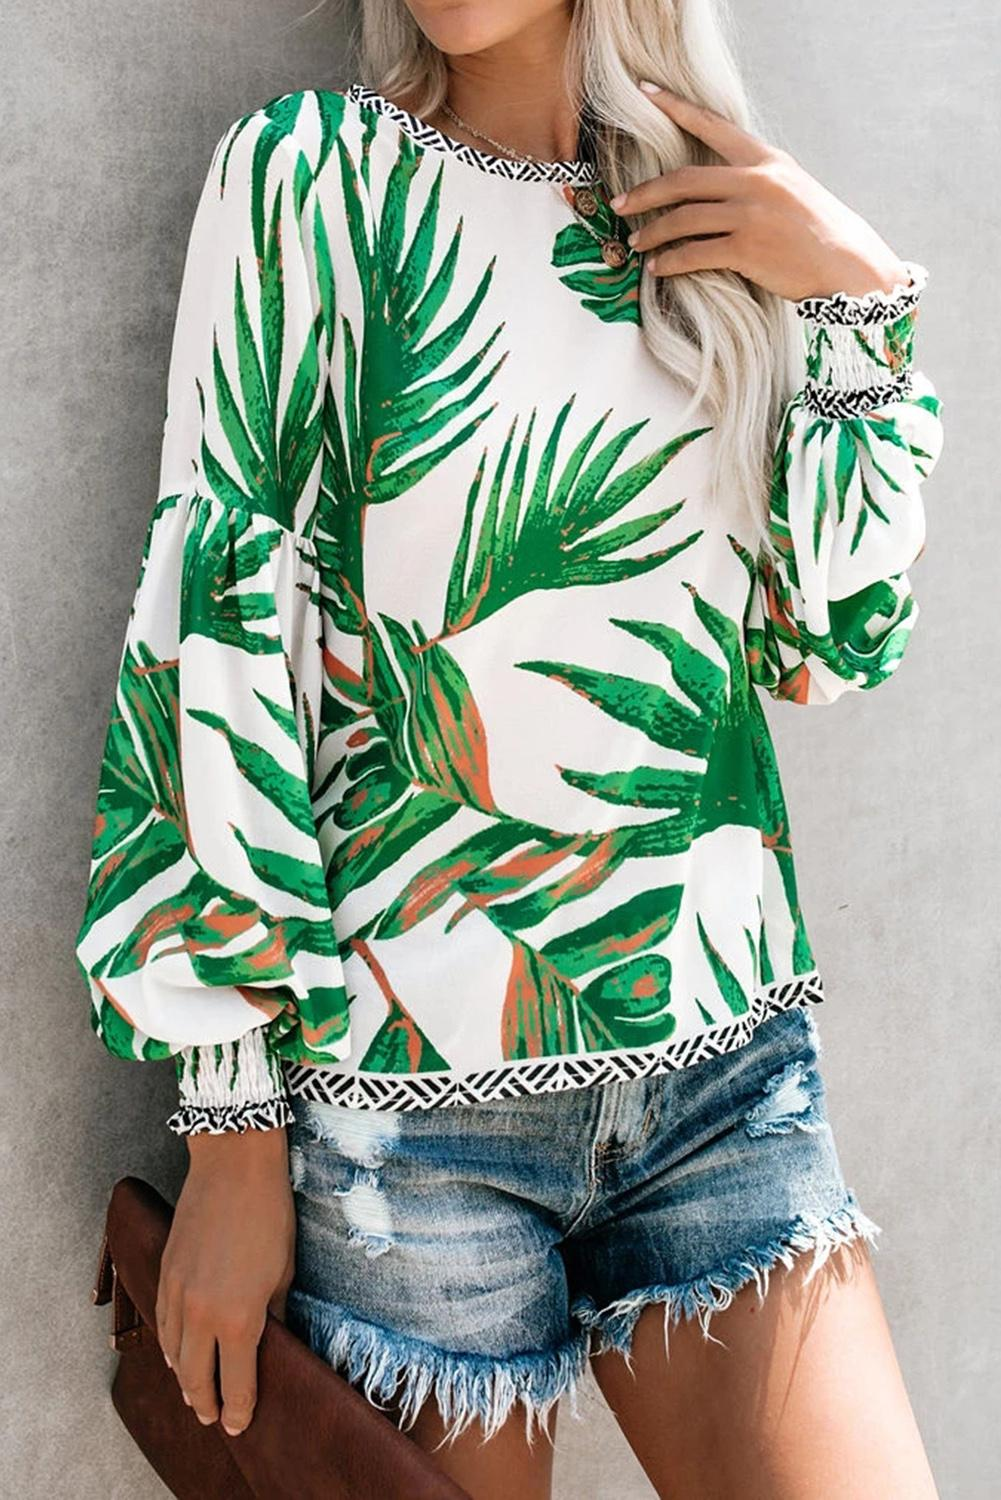 White Floral Printed Blouse Blouses & Shirts Discount Designer Fashion Clothes Shoes Bags Women Men Kids Children Black Owned Business